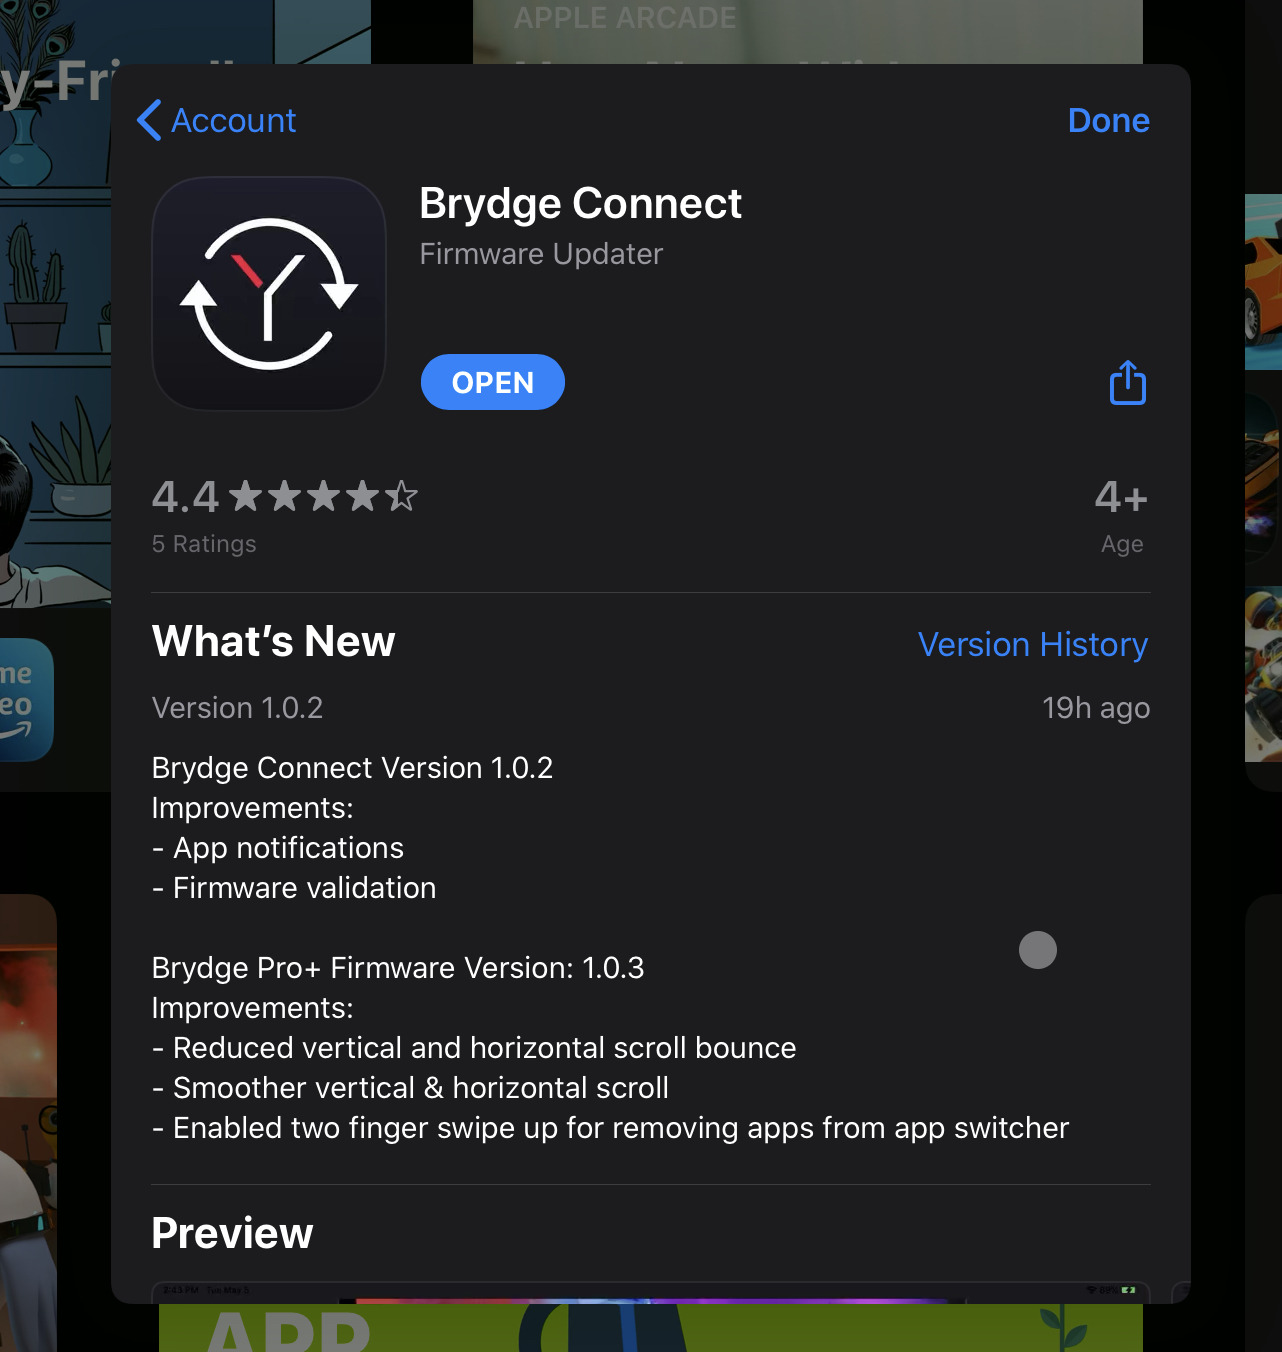 The second firmware update to the Brydge Pro+ keyboard